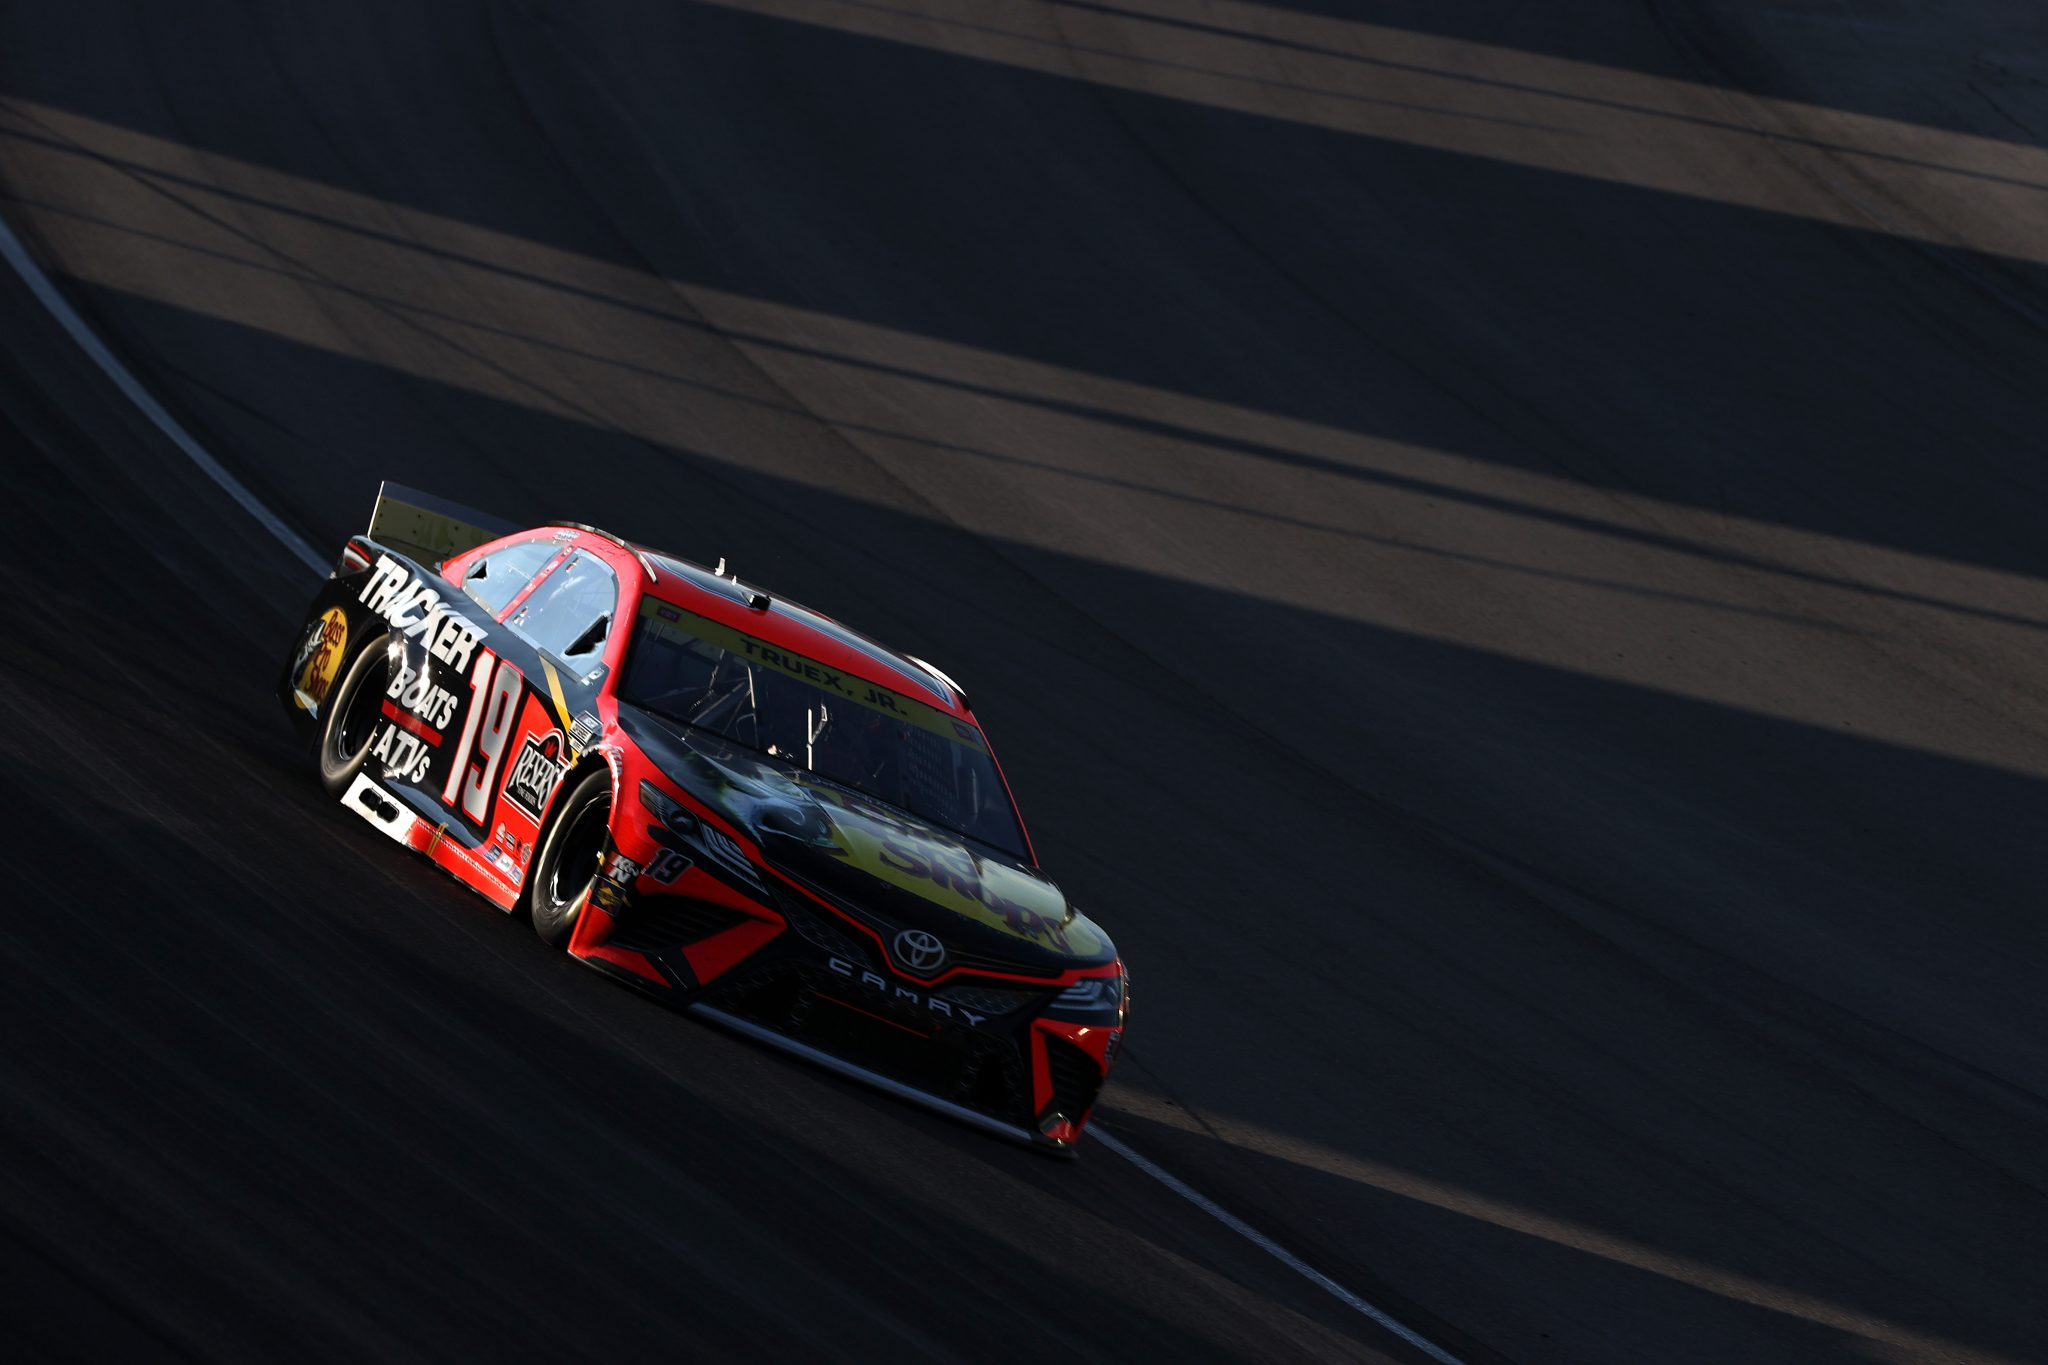 LAS VEGAS, NEVADA - SEPTEMBER 26: Martin Truex Jr., driver of the #19 Bass Pro Shops Toyota, drives during the NASCAR Cup Series South Point 400 at Las Vegas Motor Speedway on September 26, 2021 in Las Vegas, Nevada. (Photo by Meg Oliphant/Getty Images) | Getty Images